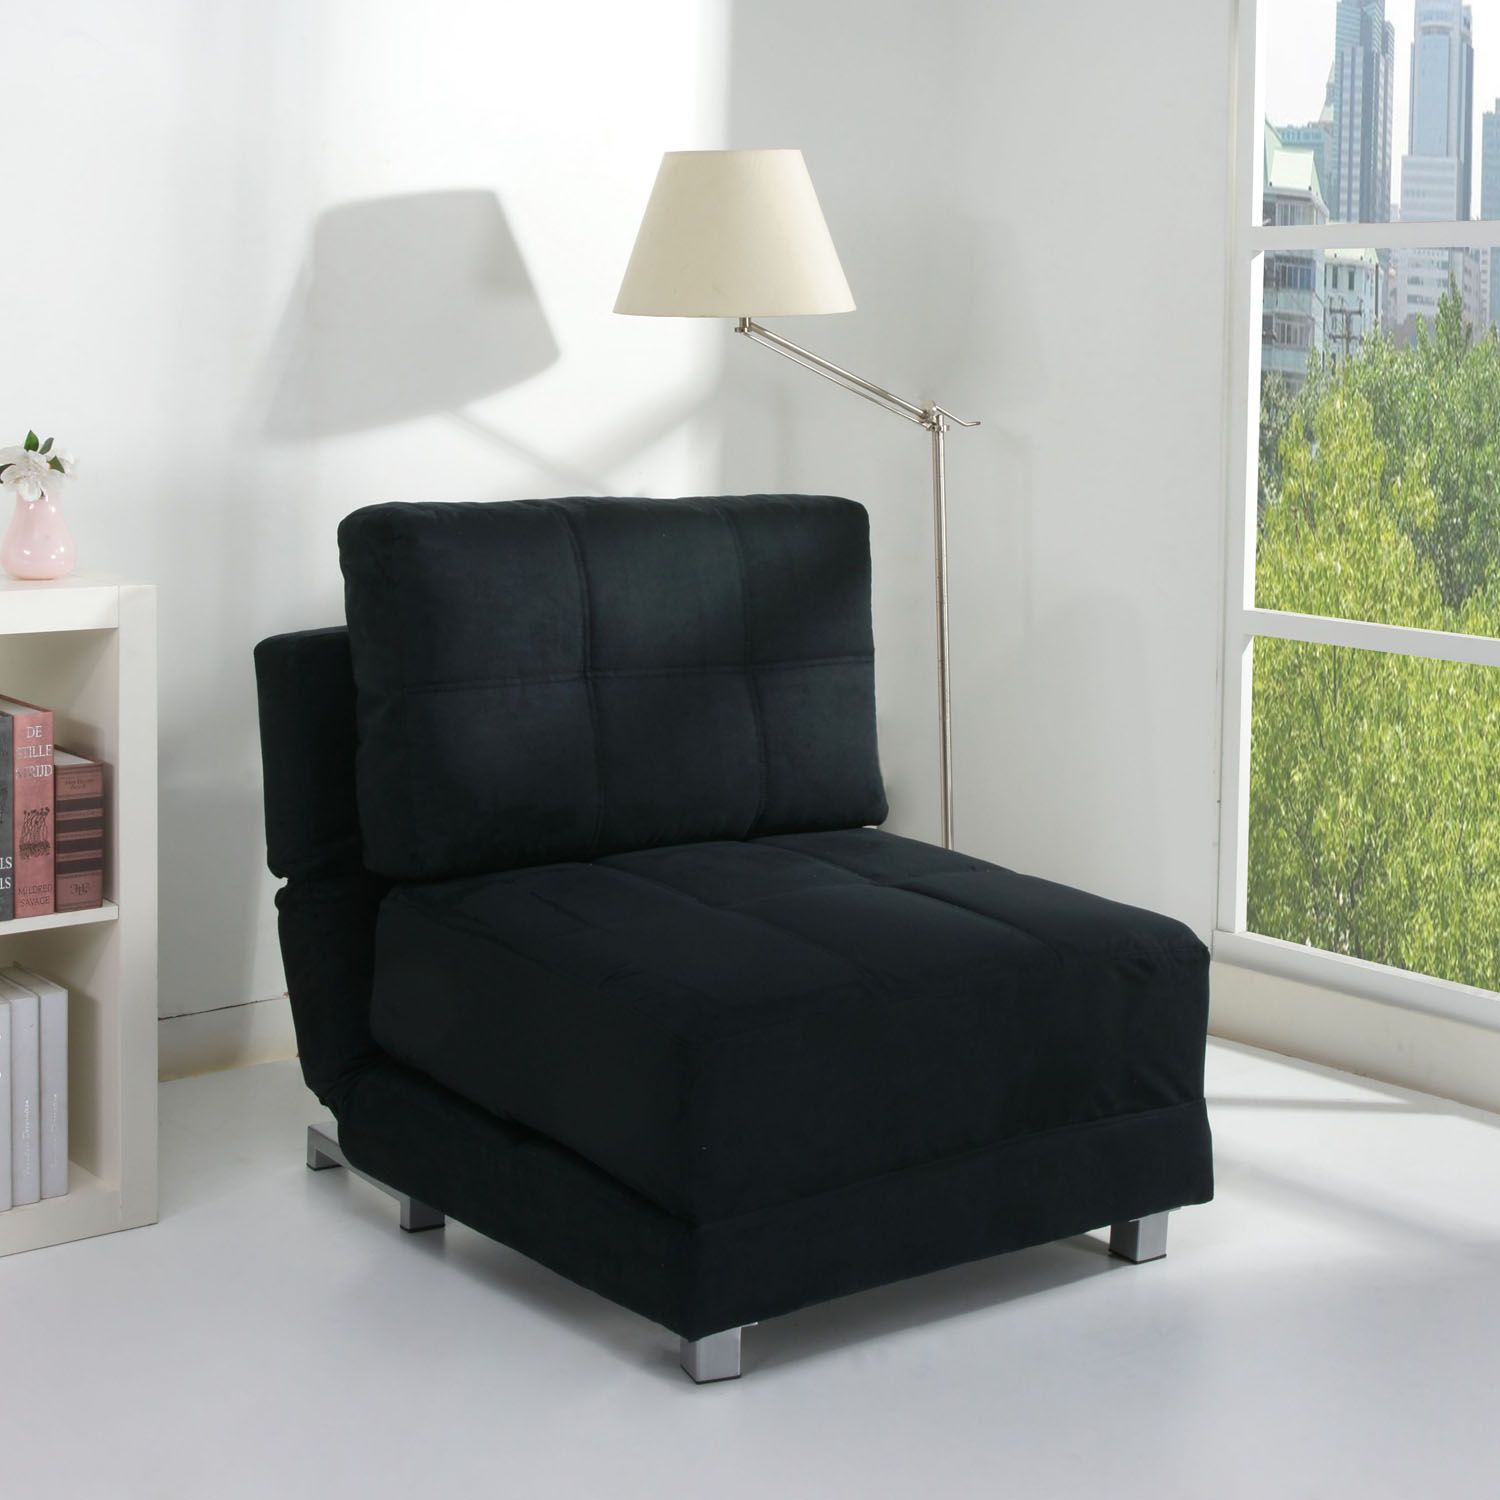 Black Chair Bed Pull out sofa bed, padded foam cushions